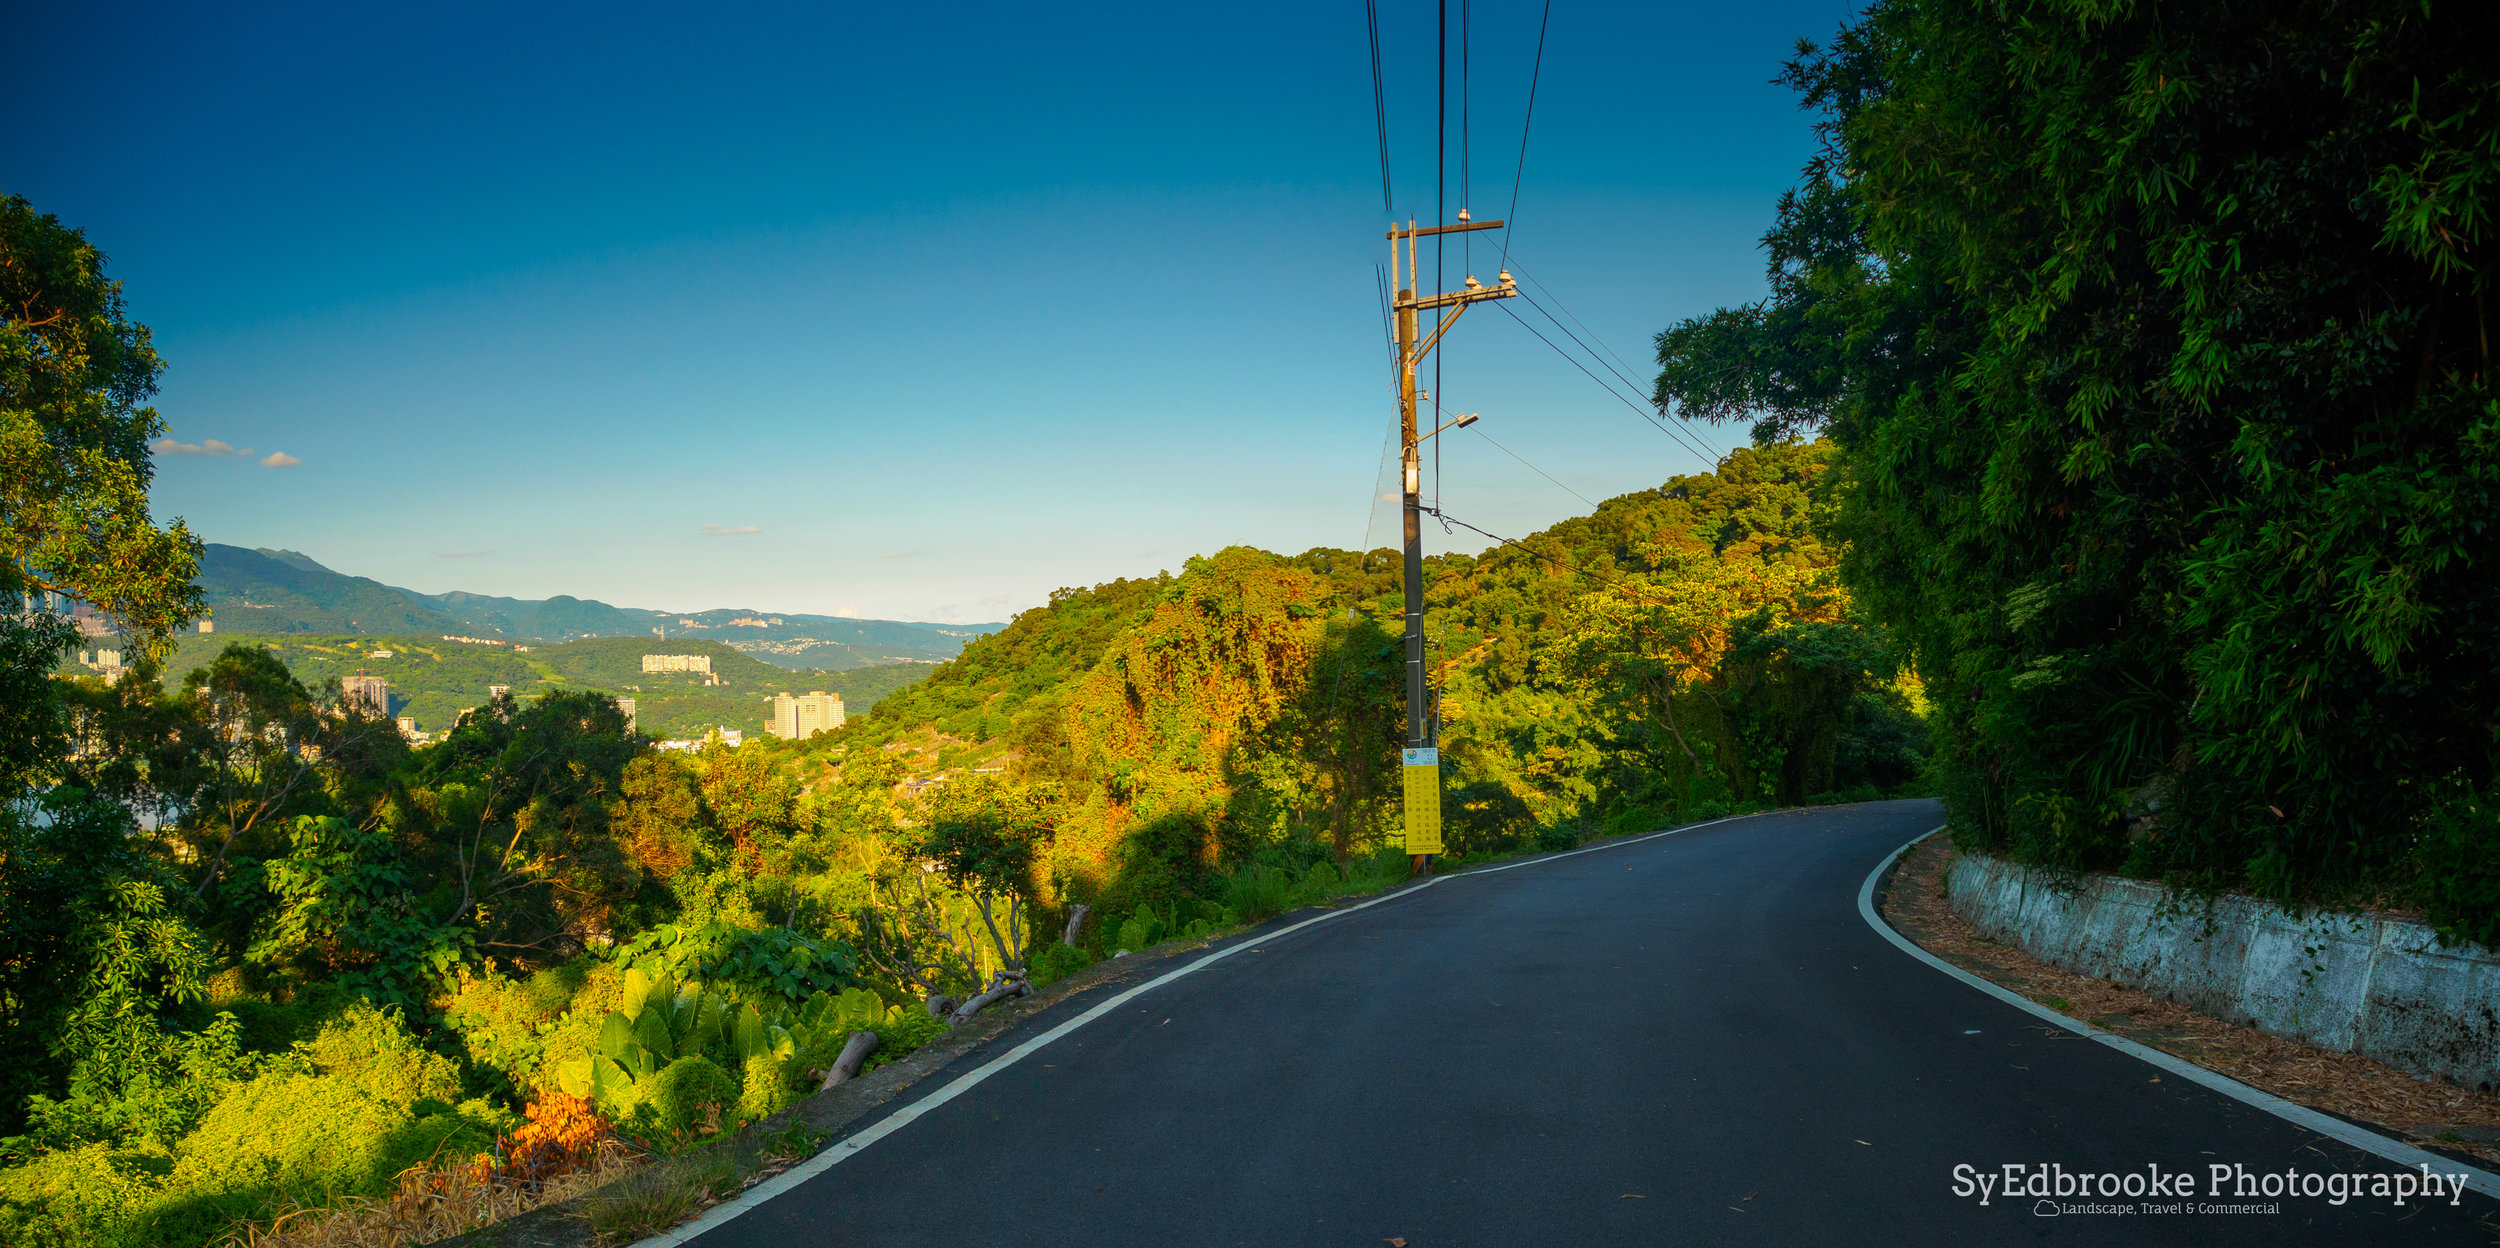 The road back to Bali wharf. f3.5, ISO 200, 1/640, 24mm (stitched panoramic)